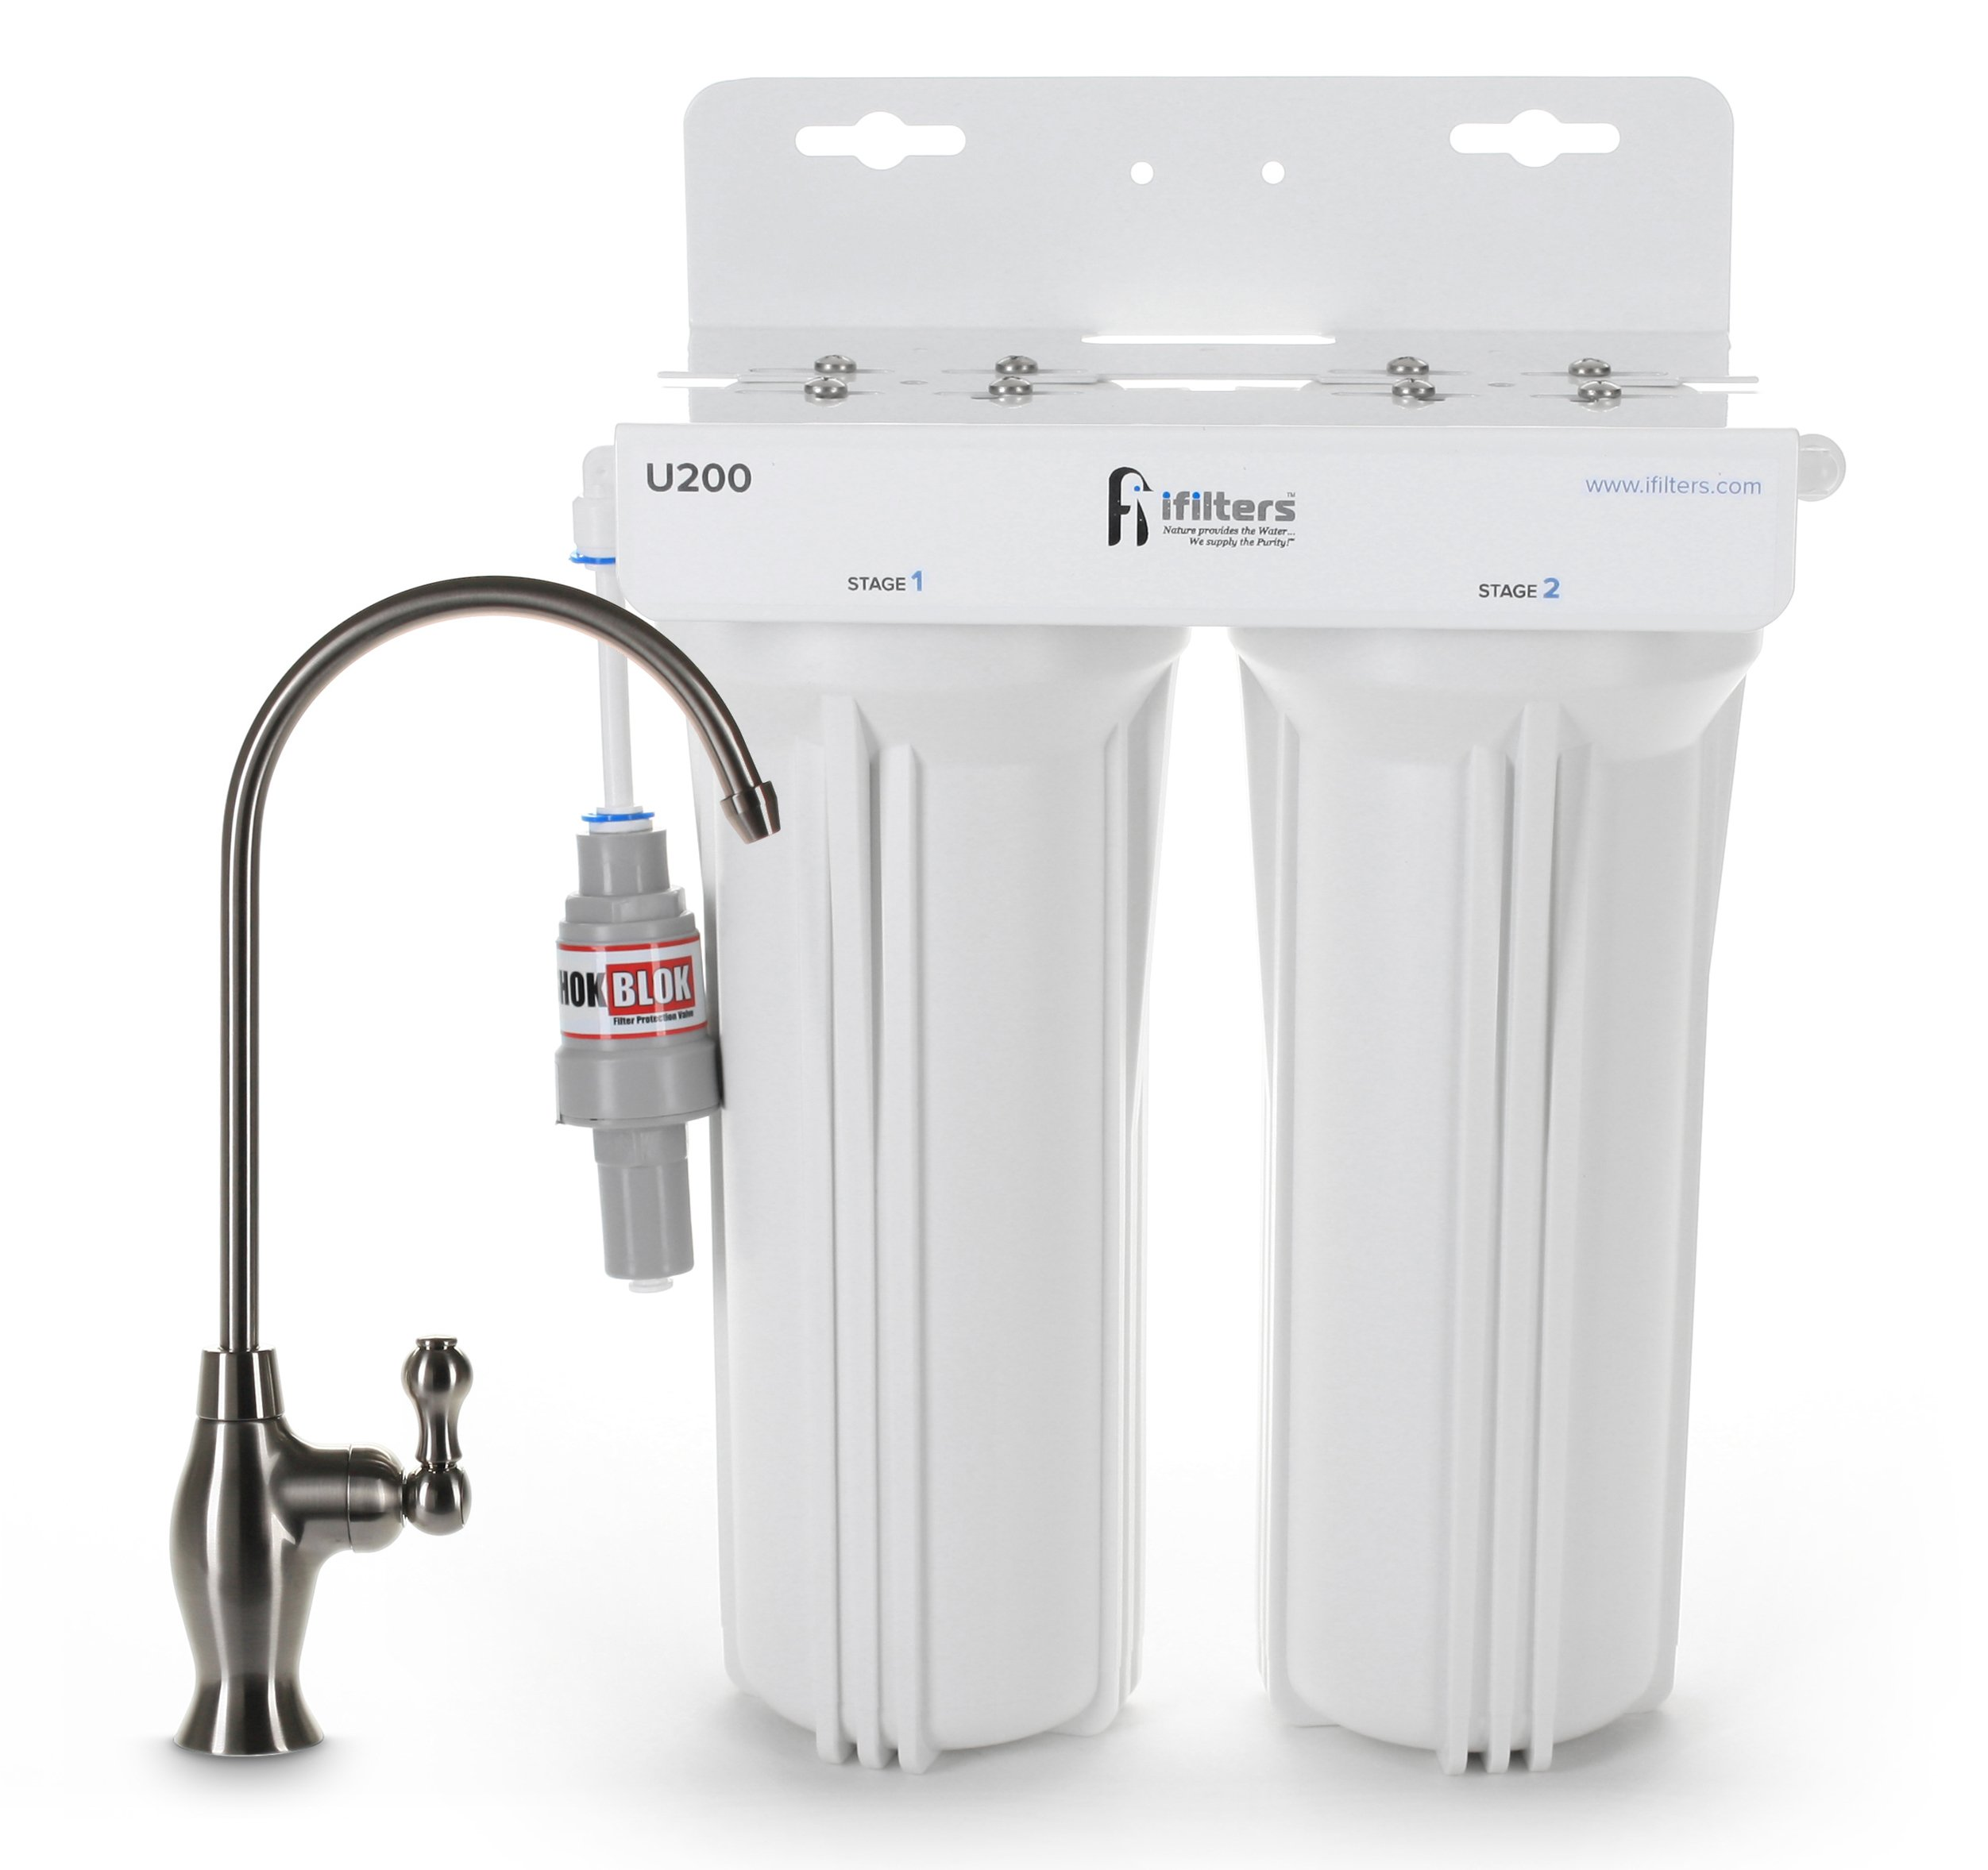 U200 Premium Drinking Water Filtration System 2 Stage w/Designer Faucet & Protection Valve, Built in USA